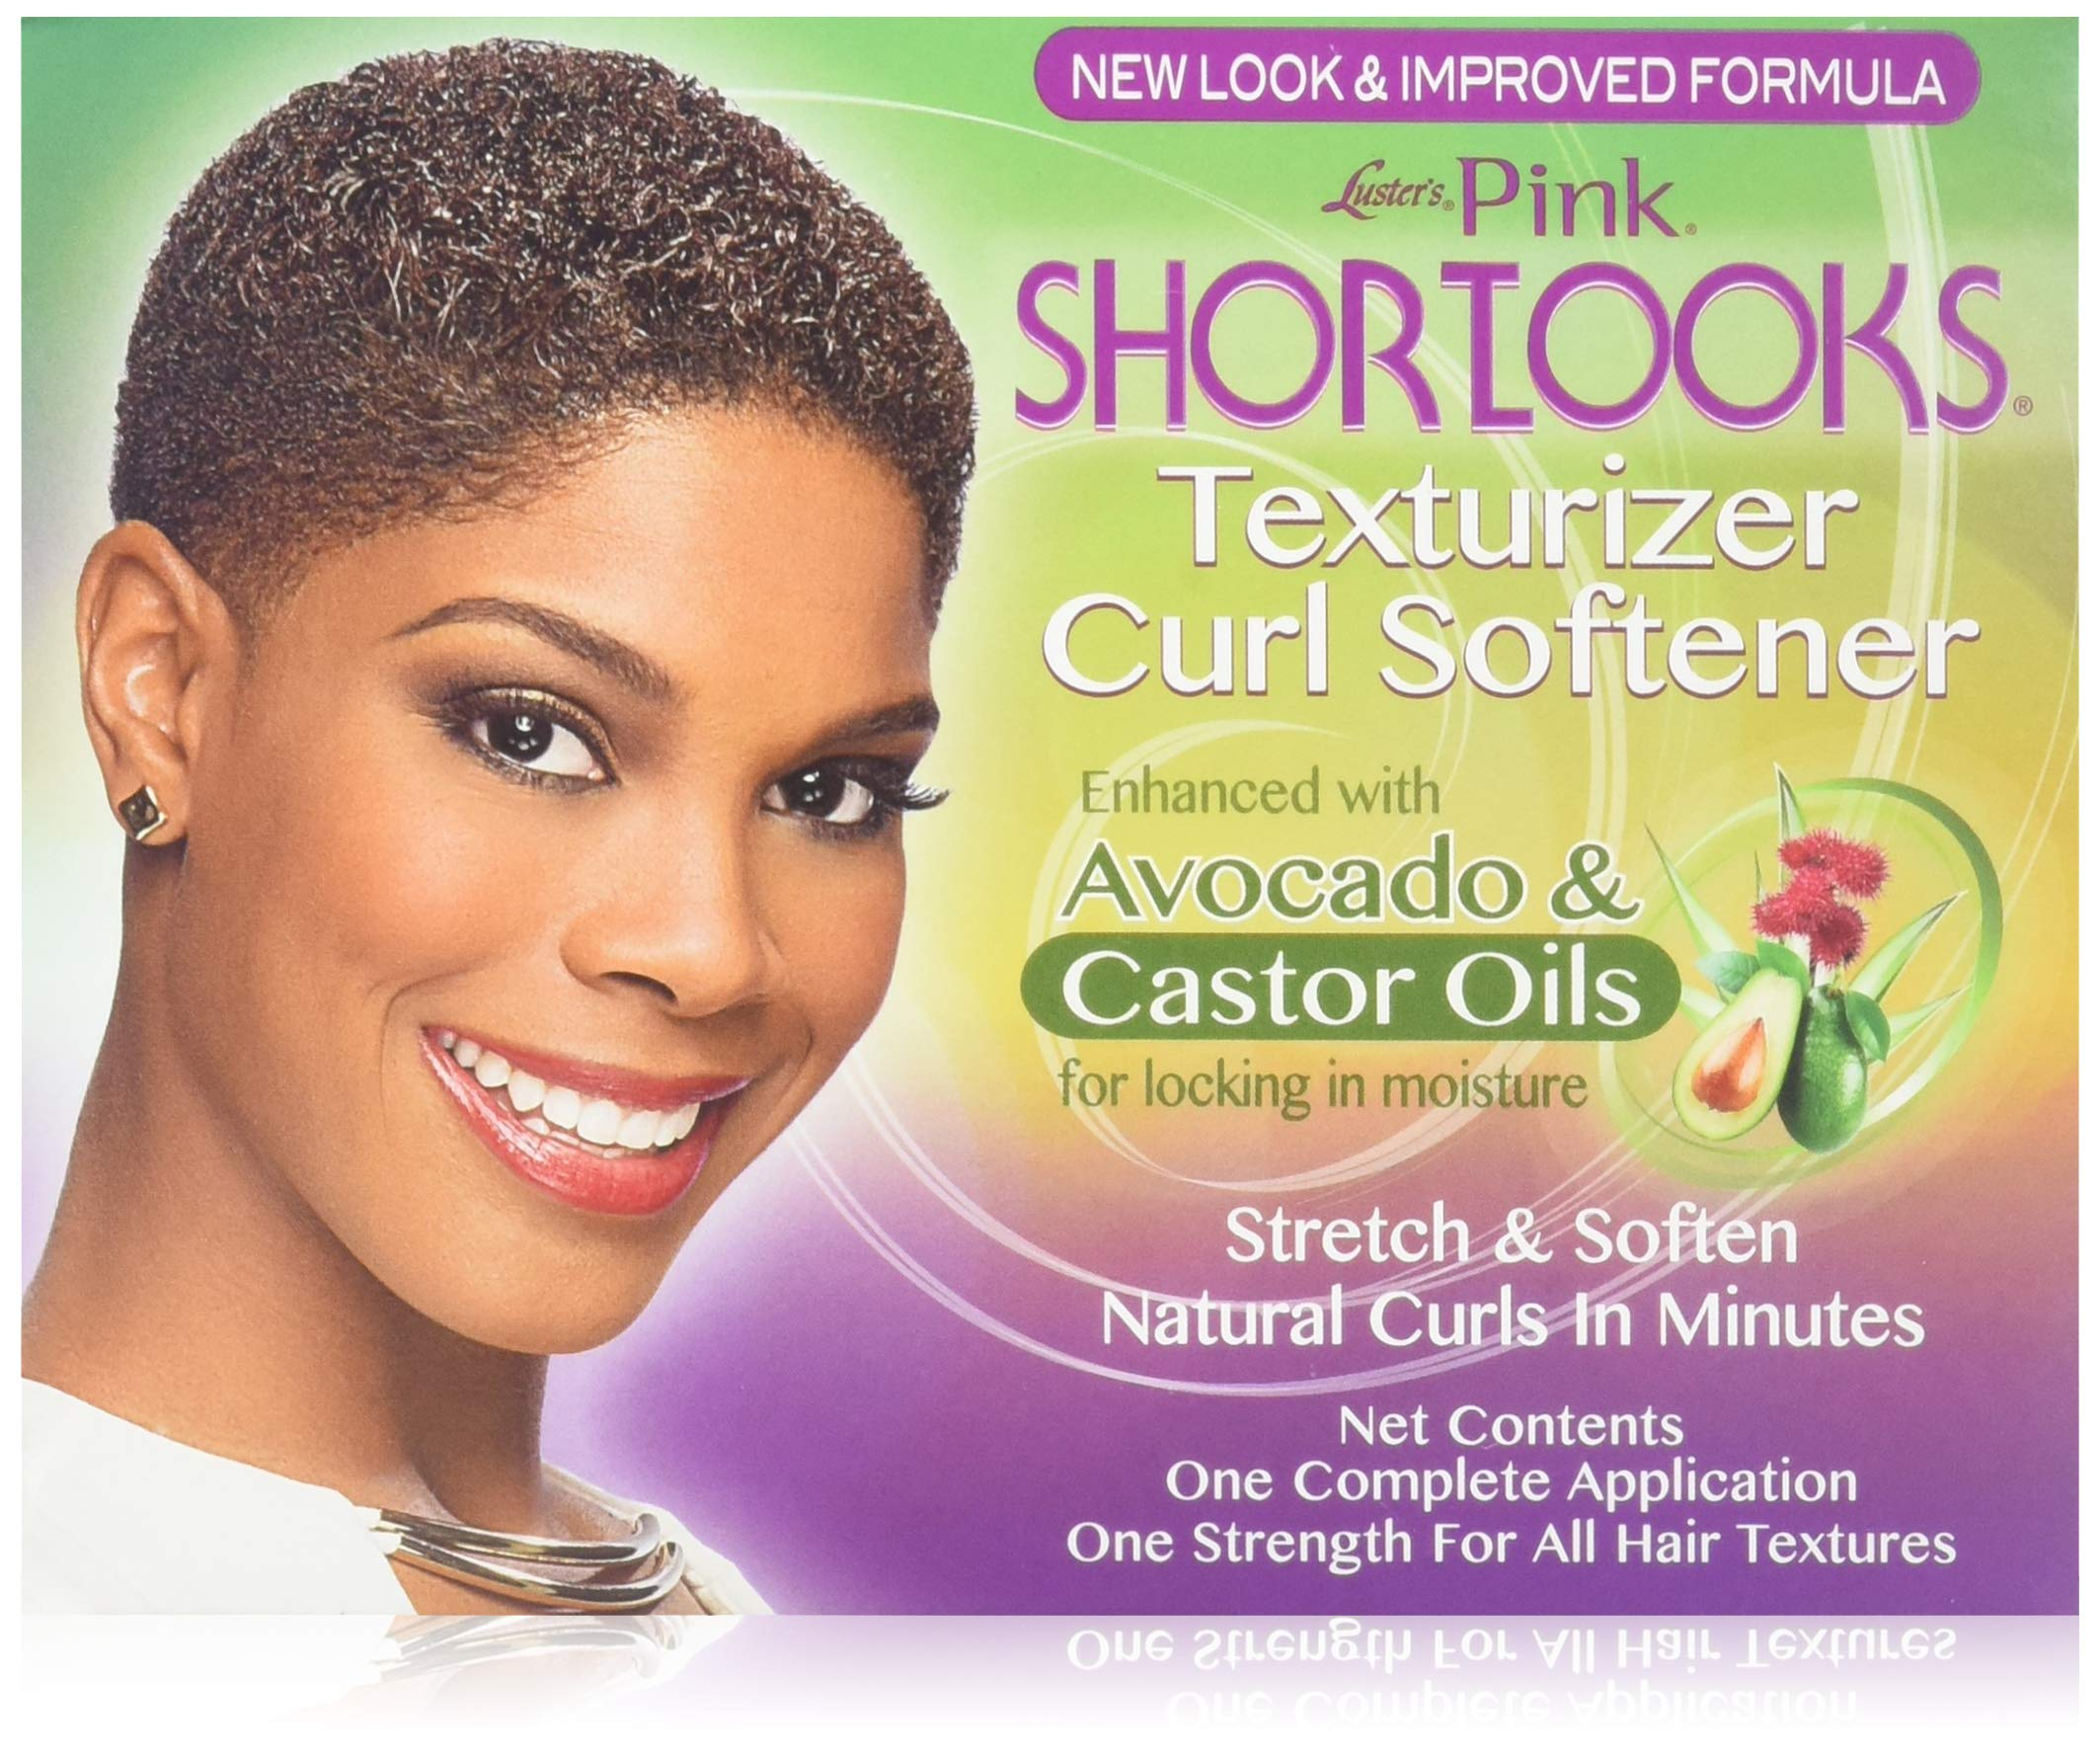 Shortlooks Luster's Pink Short Looks No-lye Texturizer Kit 3 Pack